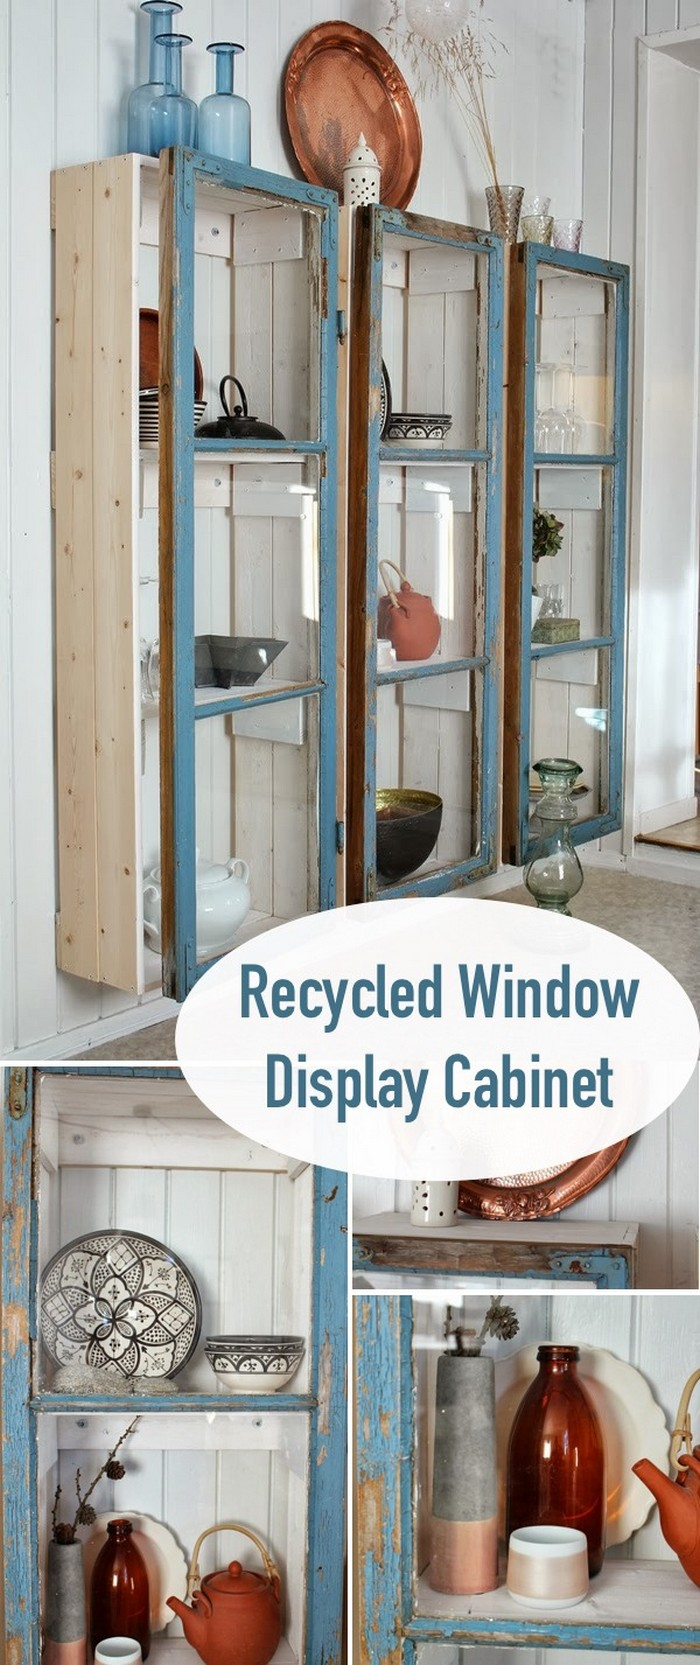 Recycled Window Display Cabinet 30 Creative Ways to Repurpose Old Windows